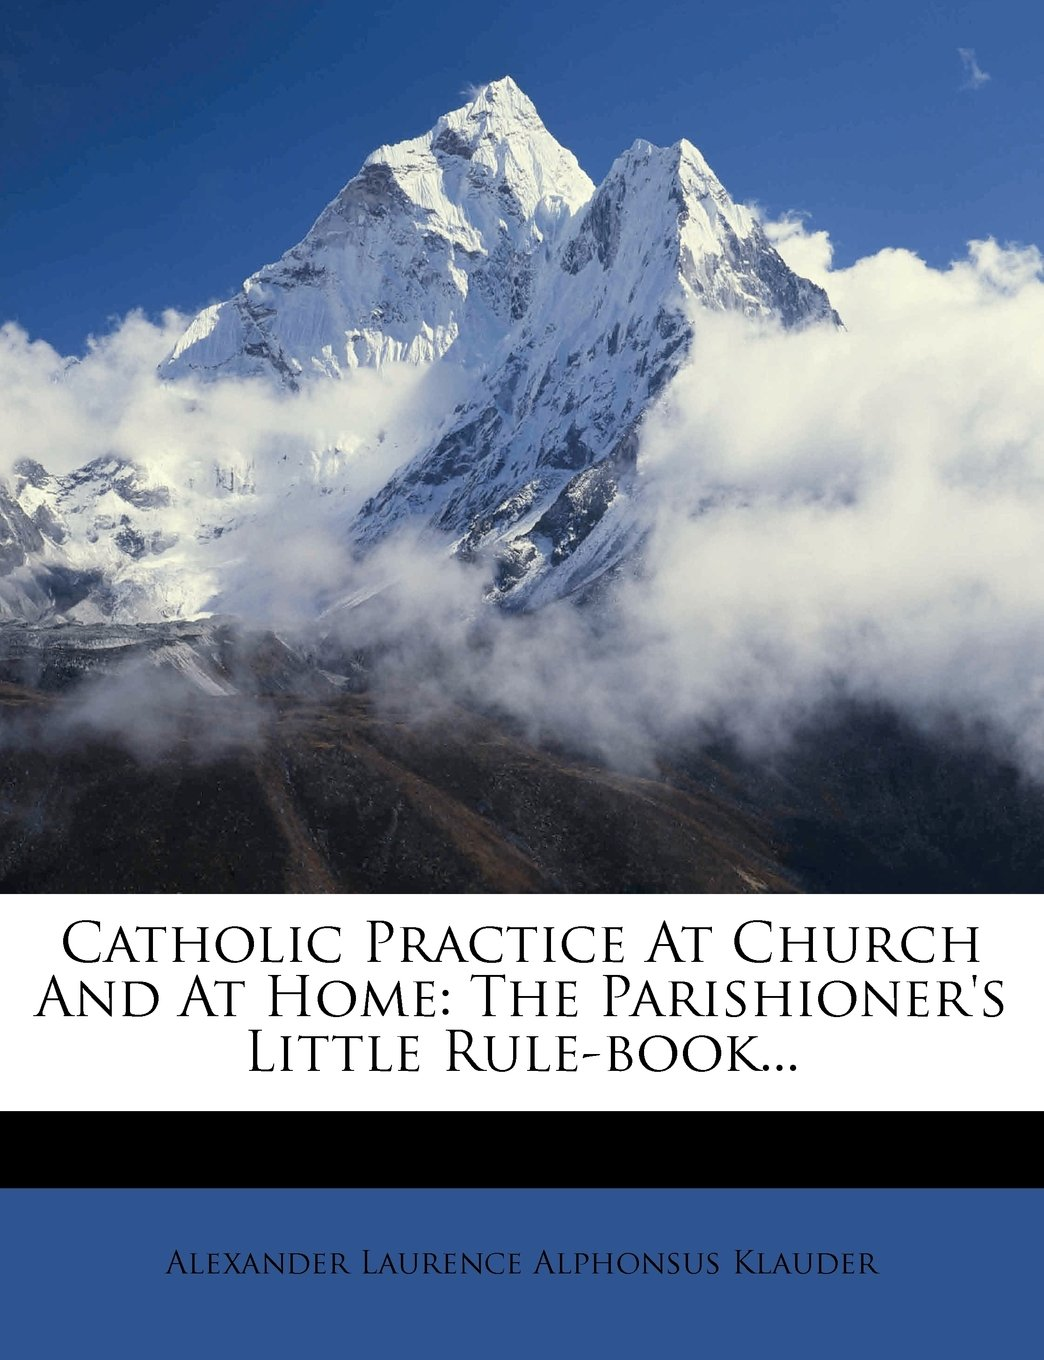 Catholic Practice At Church And At Home: The Parishioner's Little Rule-book... pdf epub